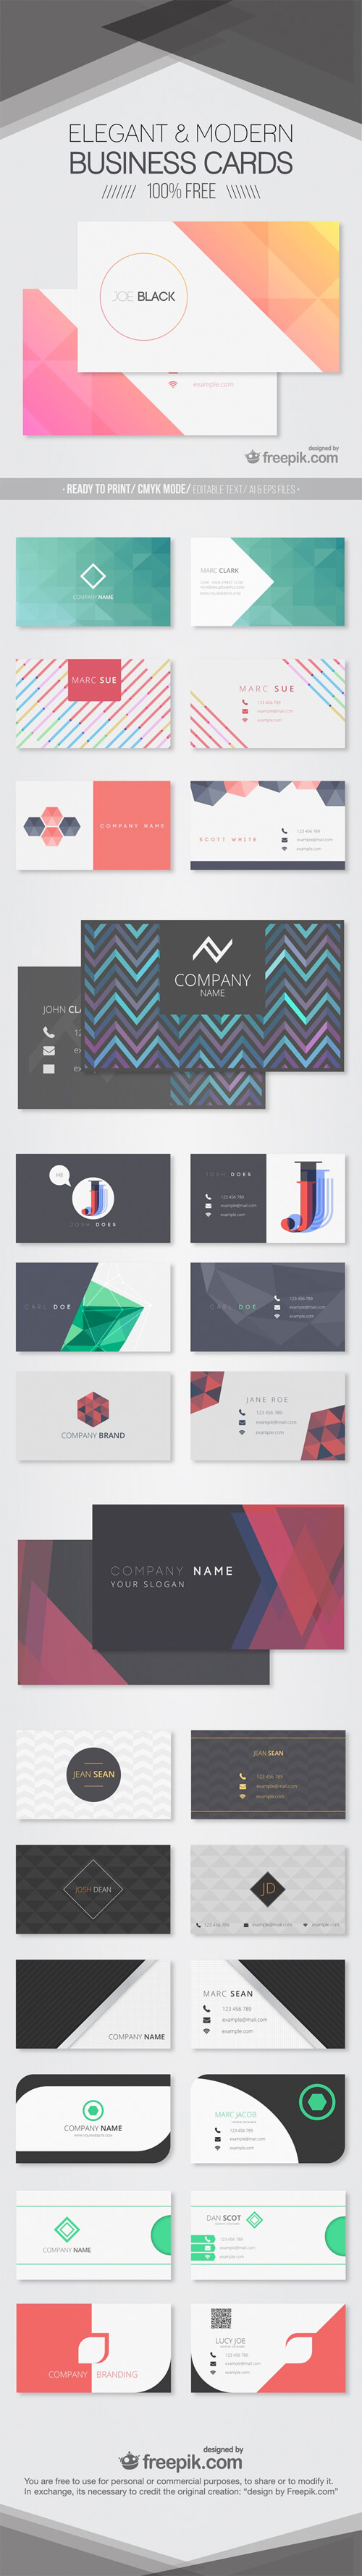 free-template-business-cards66